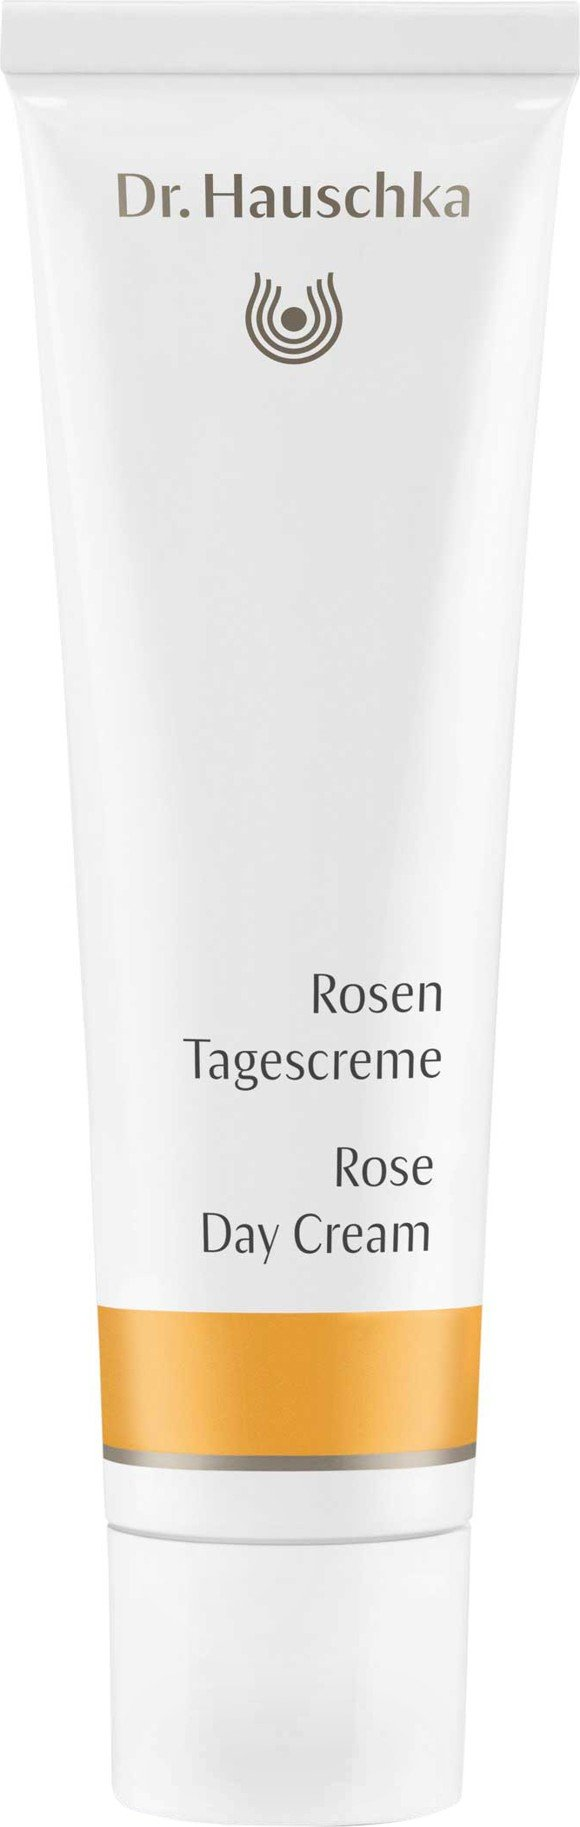 Dr. Hauschka - Rose Day Cream 30 ml